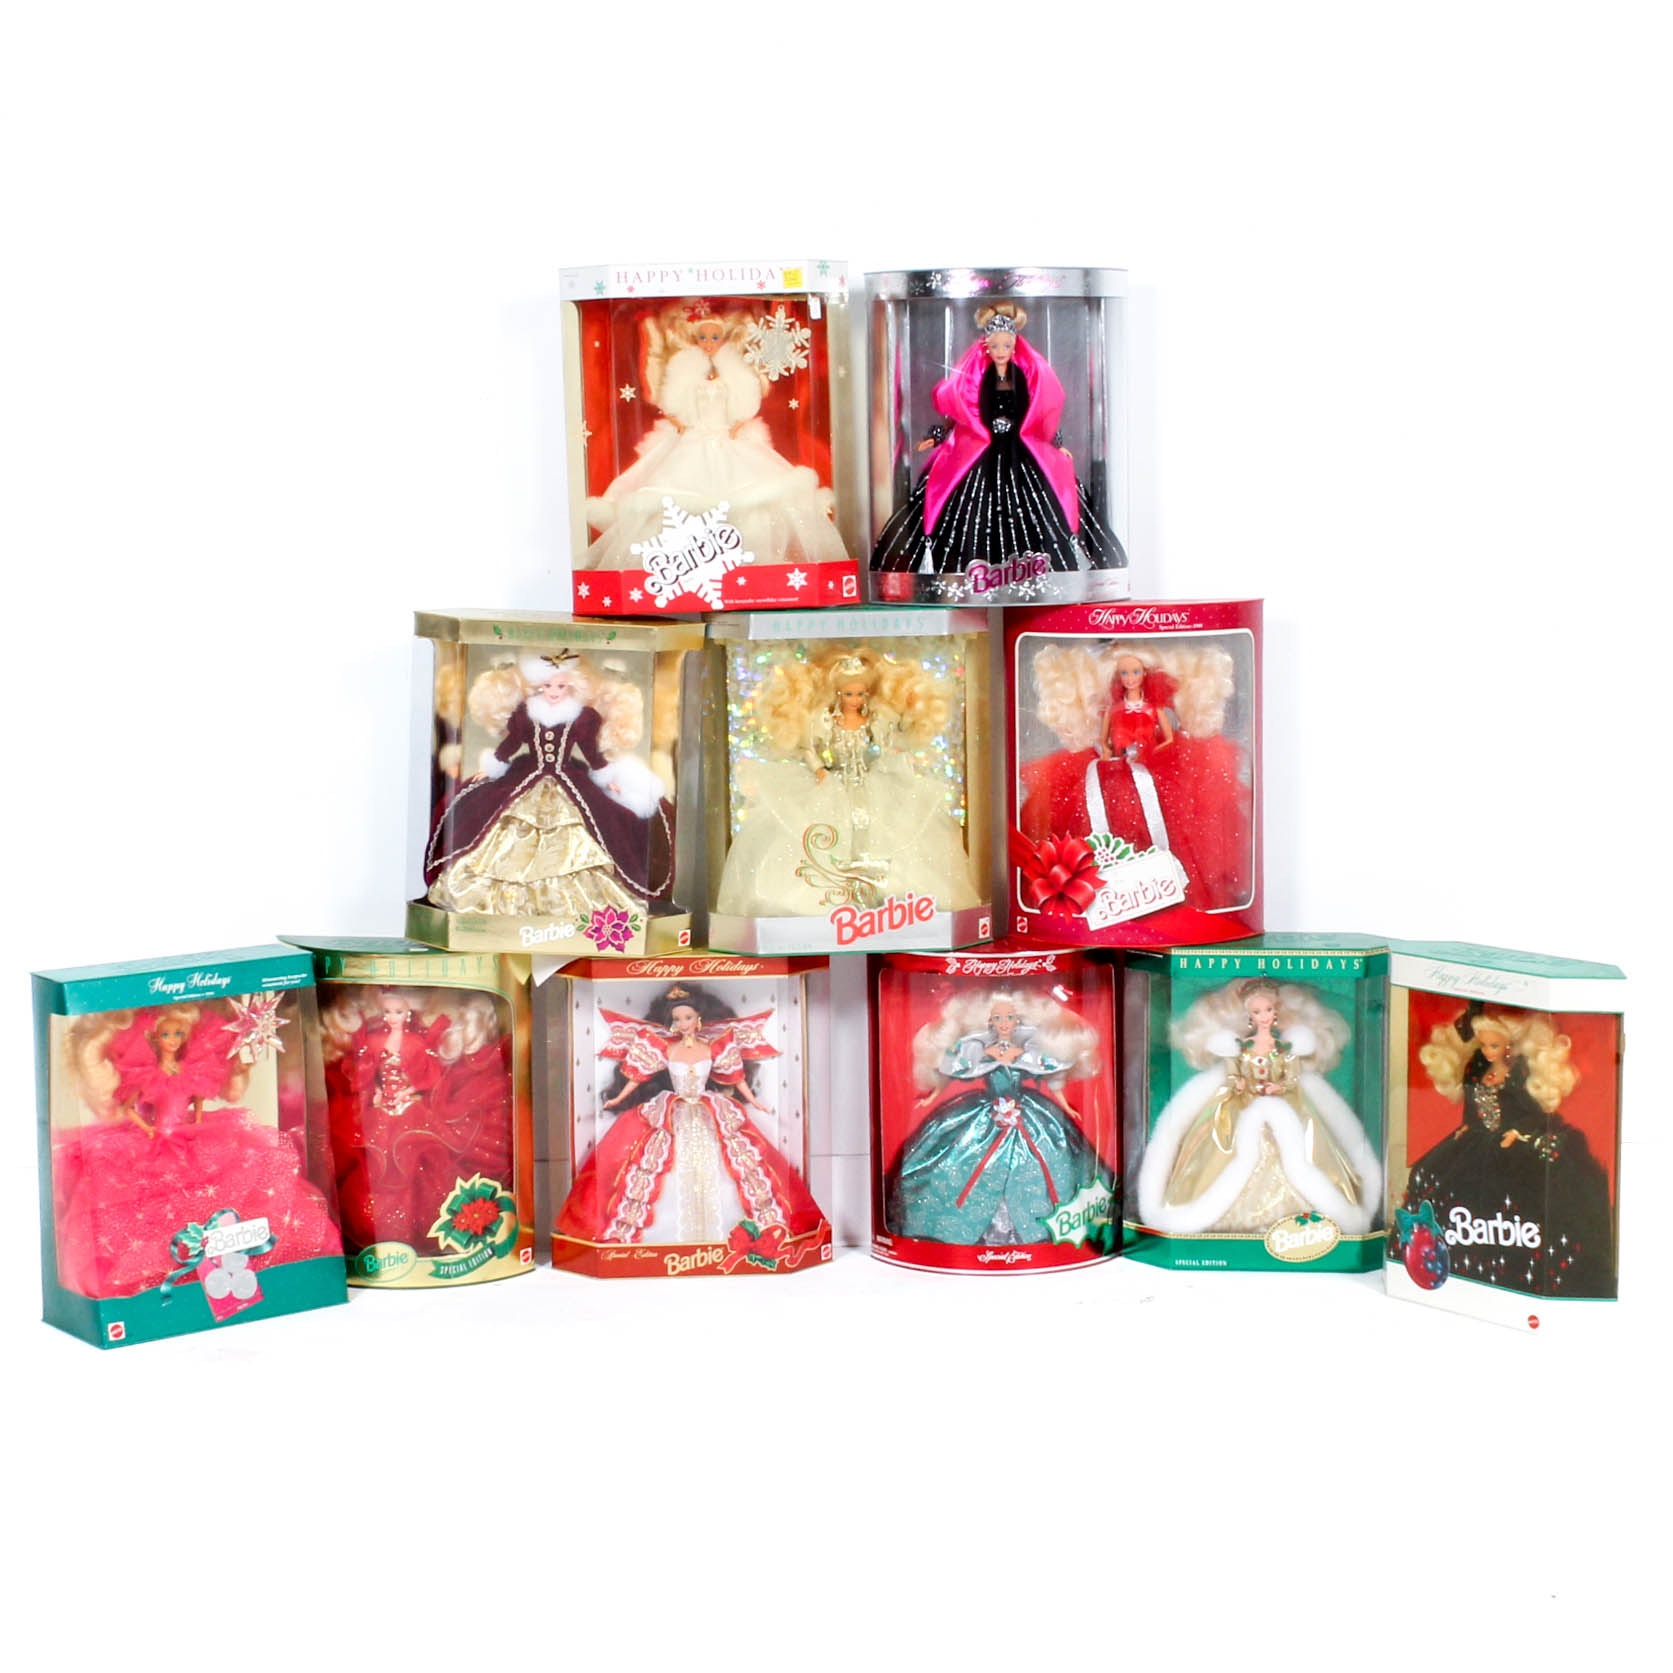 Holiday Mattel Barbie Dolls from the 1980s and 1990s